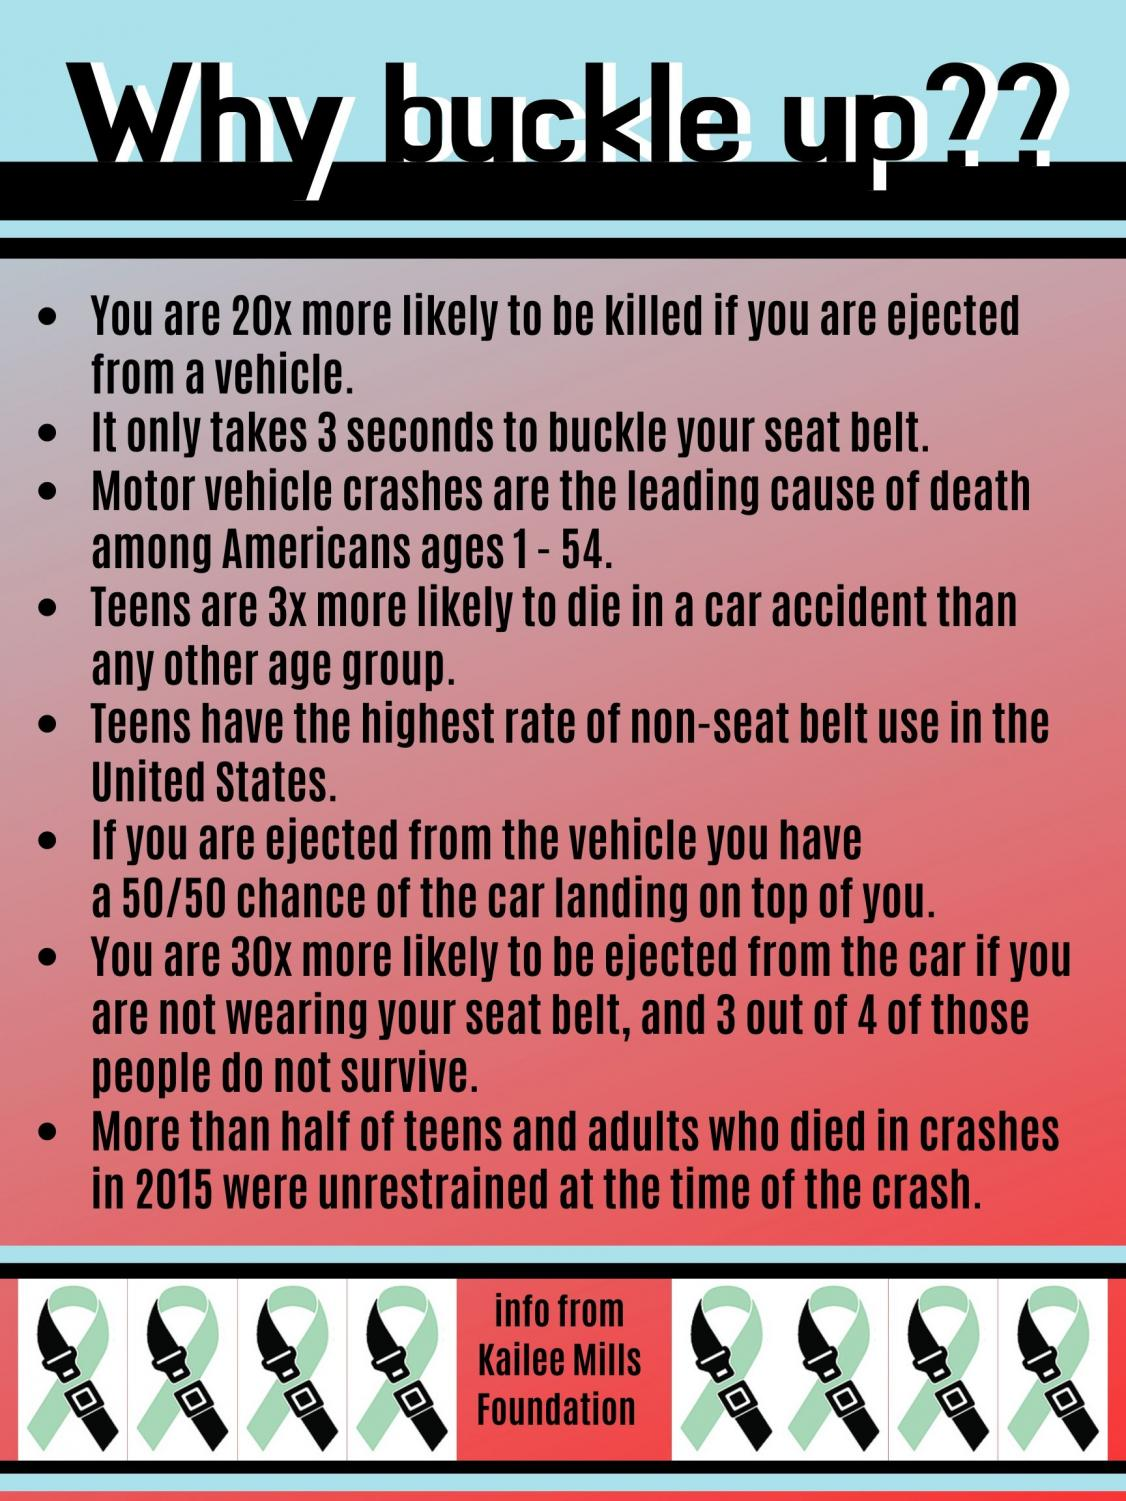 According to the Kailee Mills foundation, the three seconds it takes to buckle up can save lives. The foundation was started in memory of Spring teenager Kailee Mills who died in 2017.